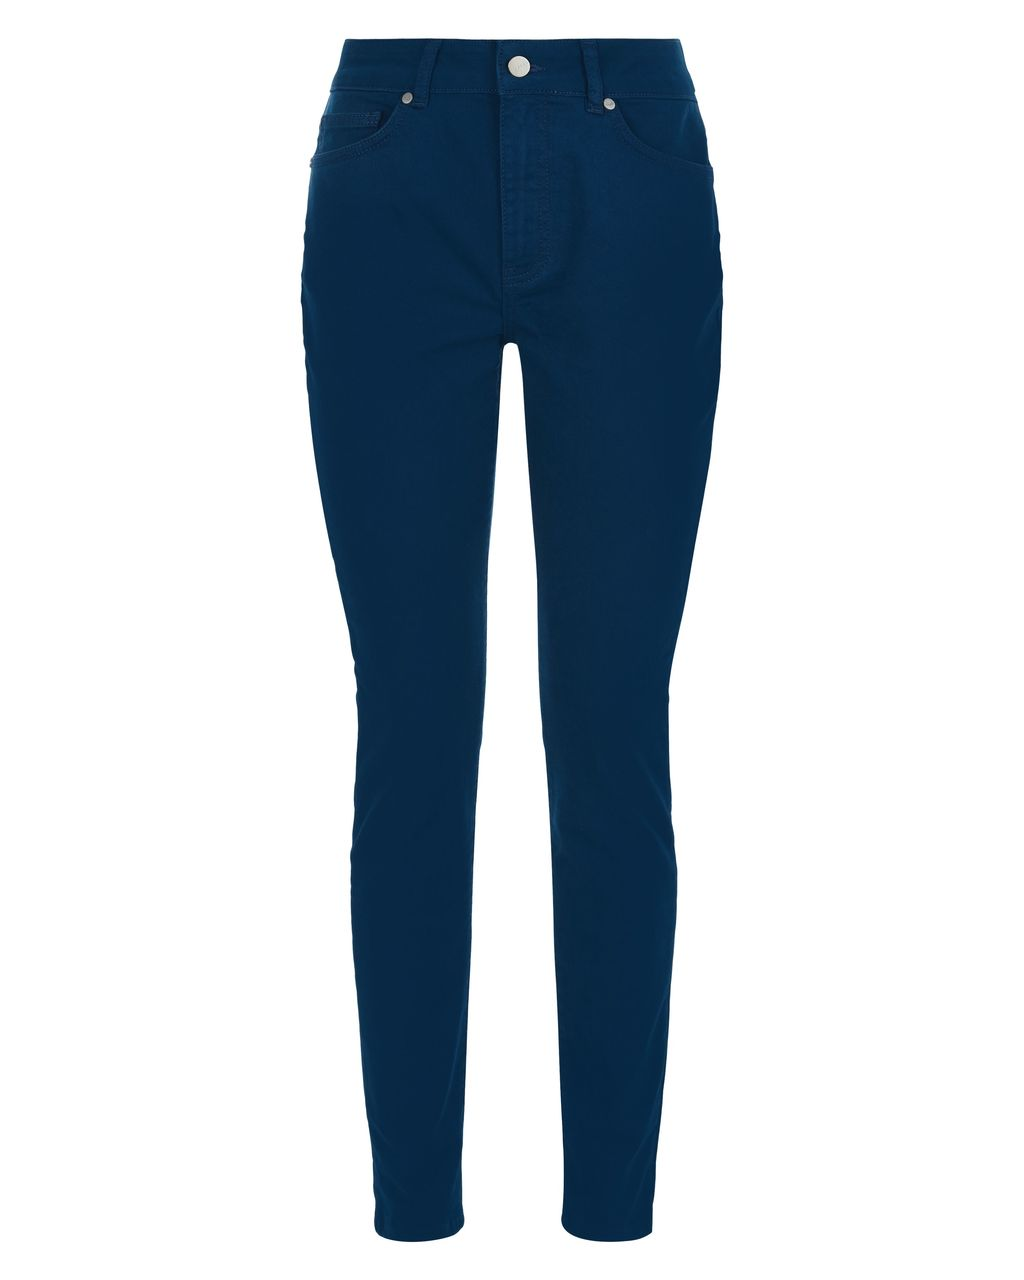 Colour Skinny Jeans, Blue - style: skinny leg; length: standard; pattern: plain; waist: high rise; pocket detail: traditional 5 pocket; predominant colour: navy; occasions: casual; fibres: cotton - stretch; jeans detail: dark wash; texture group: denim; pattern type: fabric; season: s/s 2016; wardrobe: basic